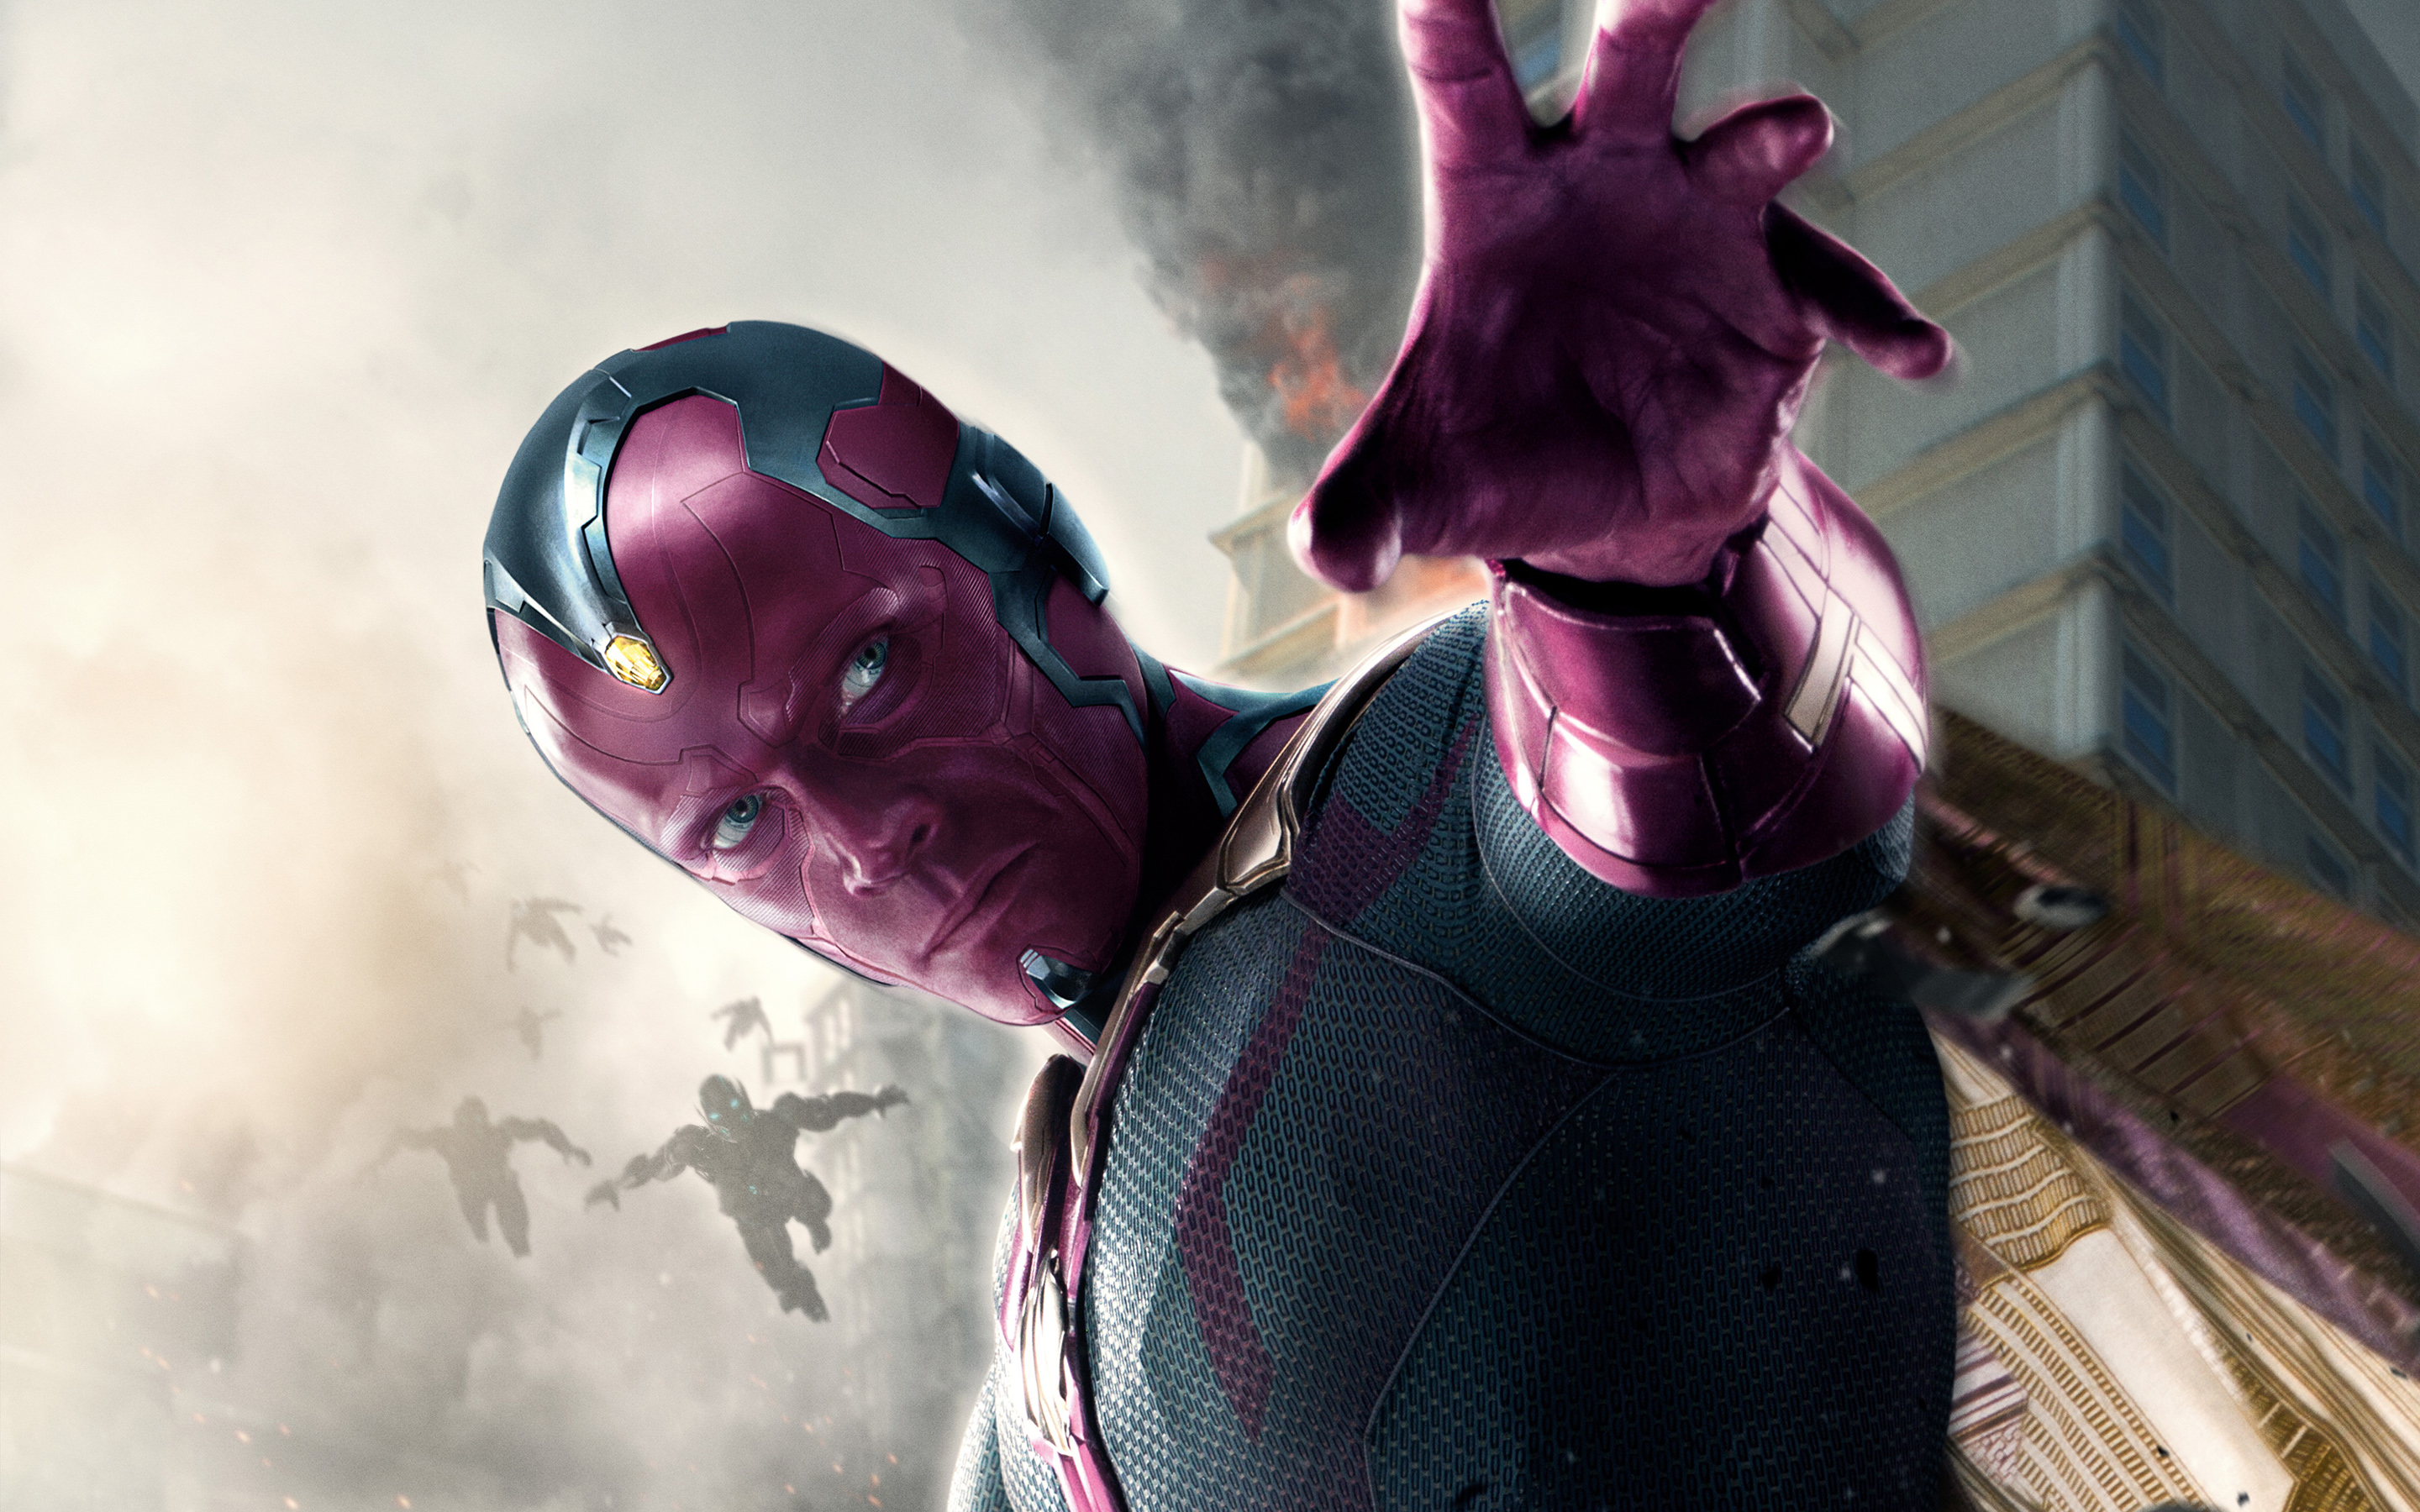 Vision in Avengers Age of Ultron by hdwallpapersin 2880x1800